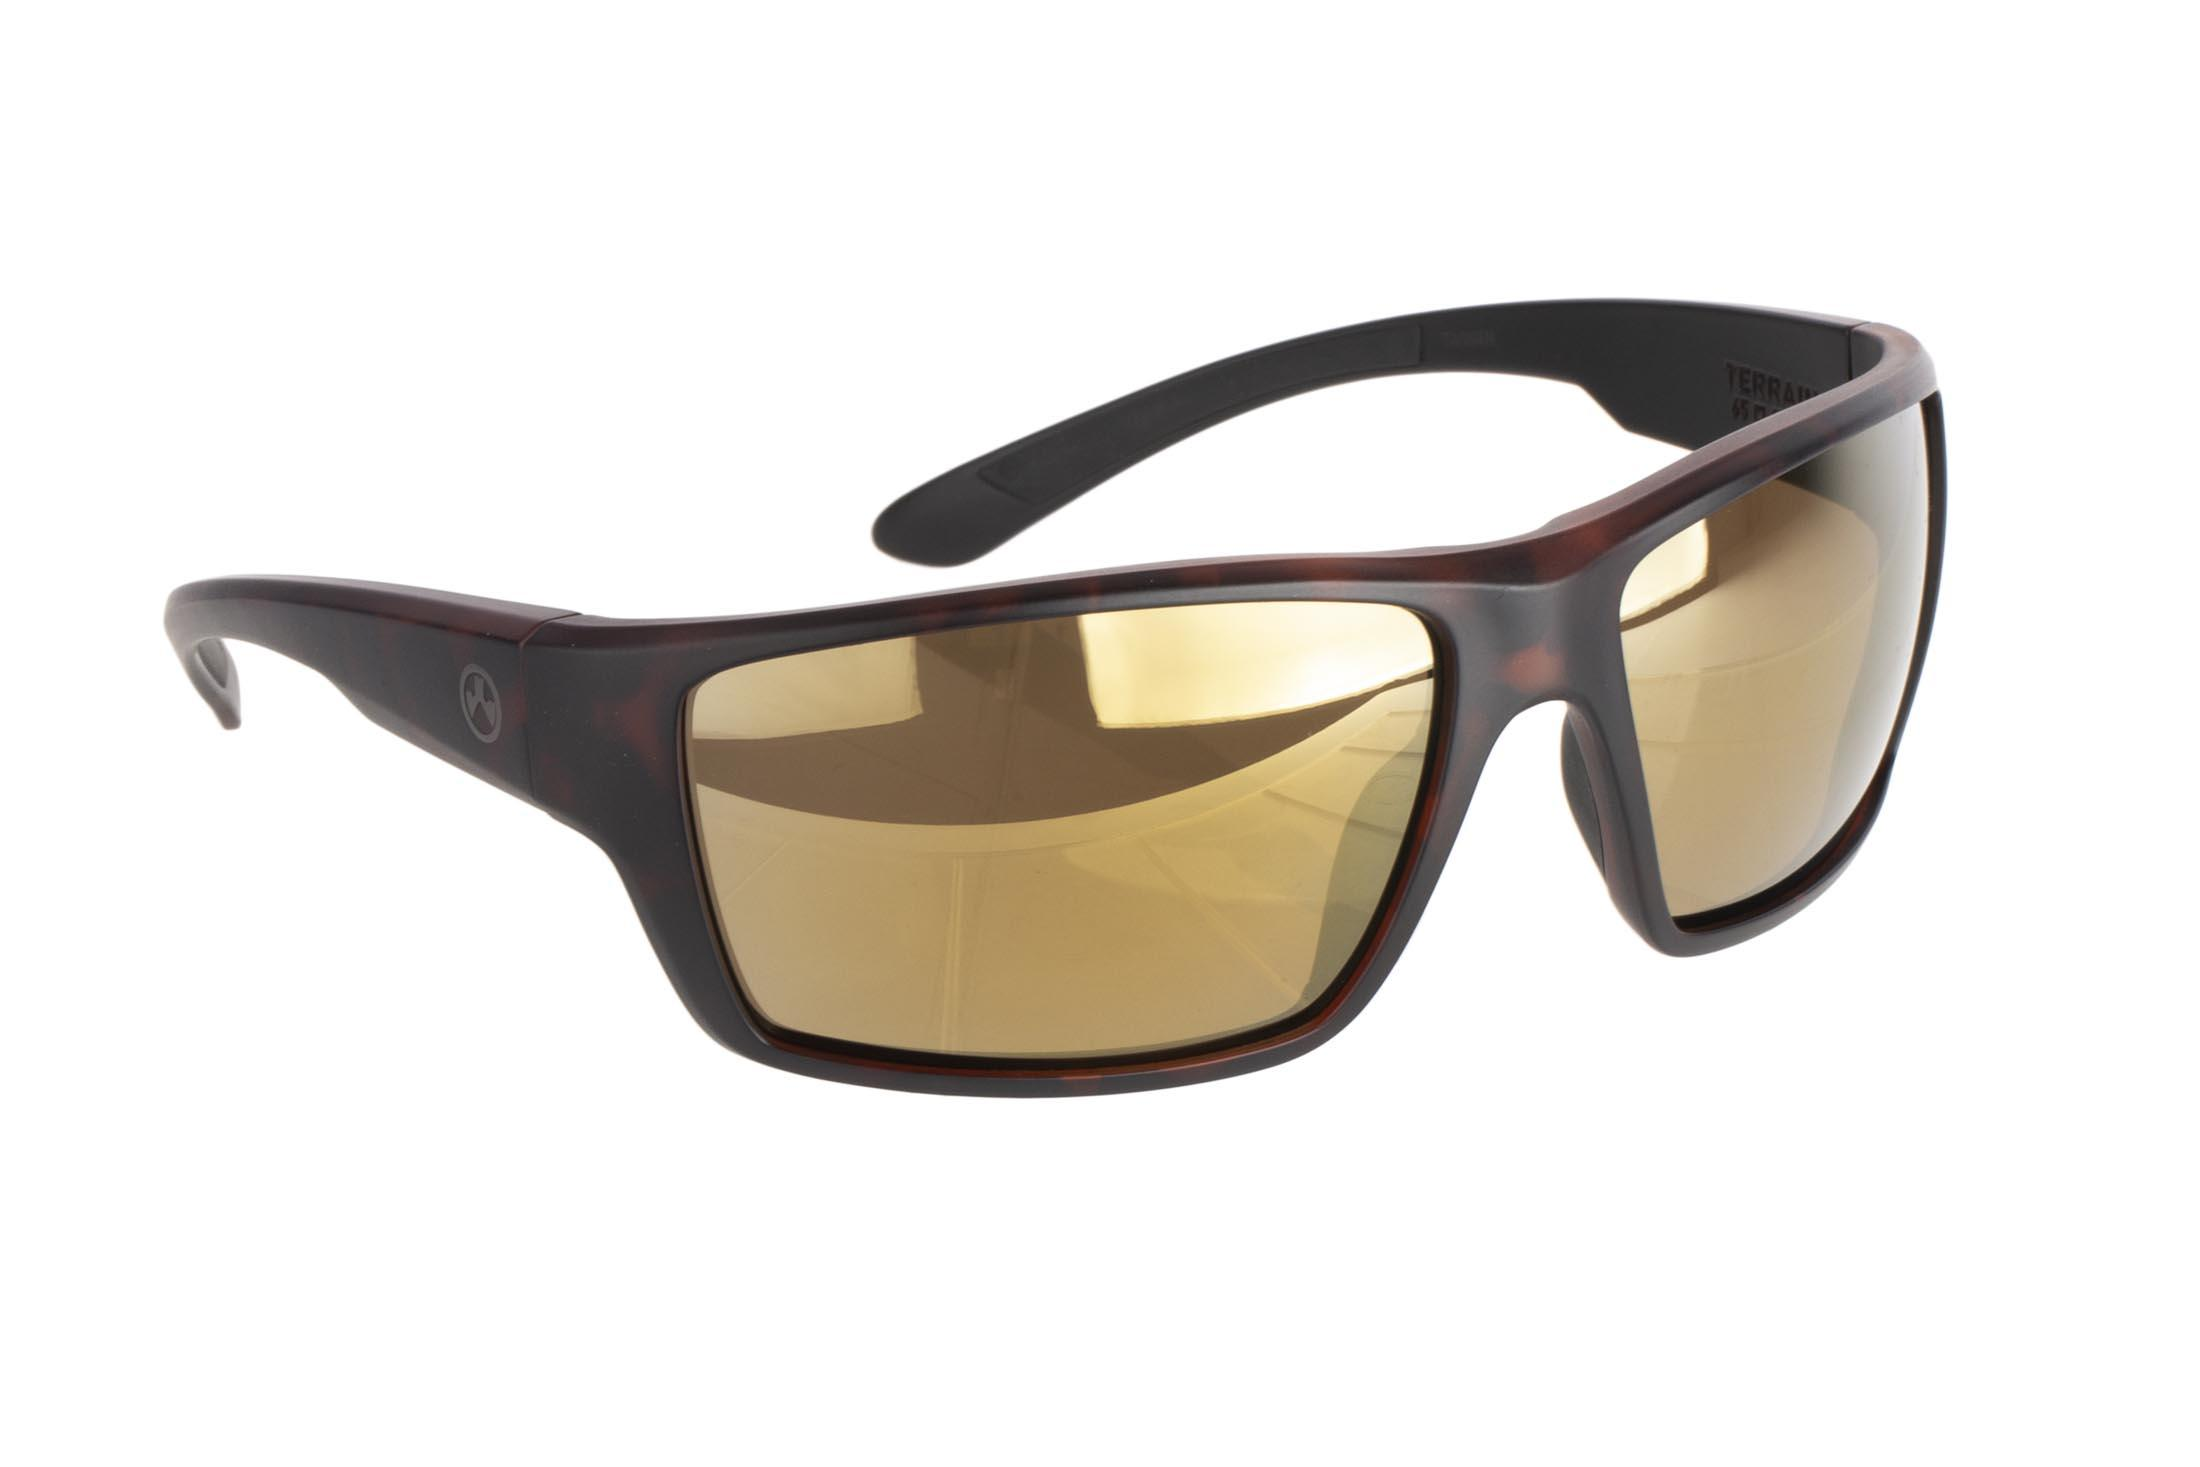 Magpul Terrain ballistic sunglasses with tortoise frame and polarized bronze/gold lenses are ideal for medium-to-large sized shooters